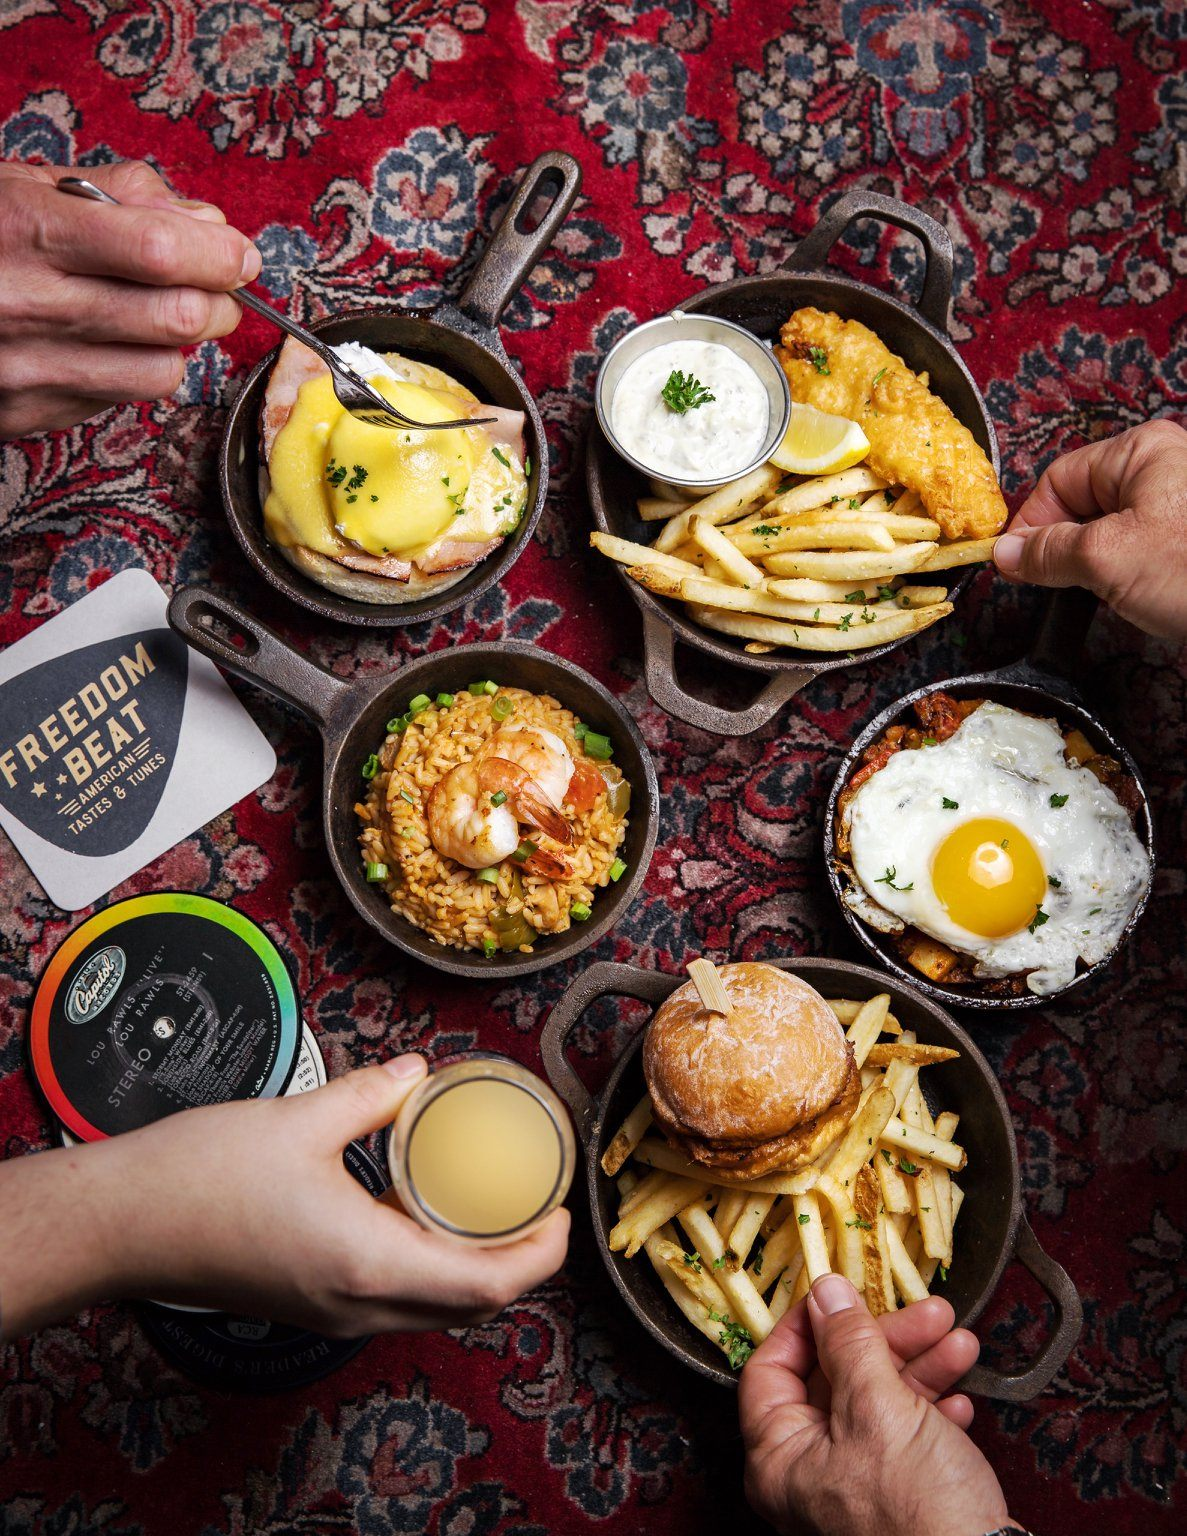 An overhead view of breakfast dishes